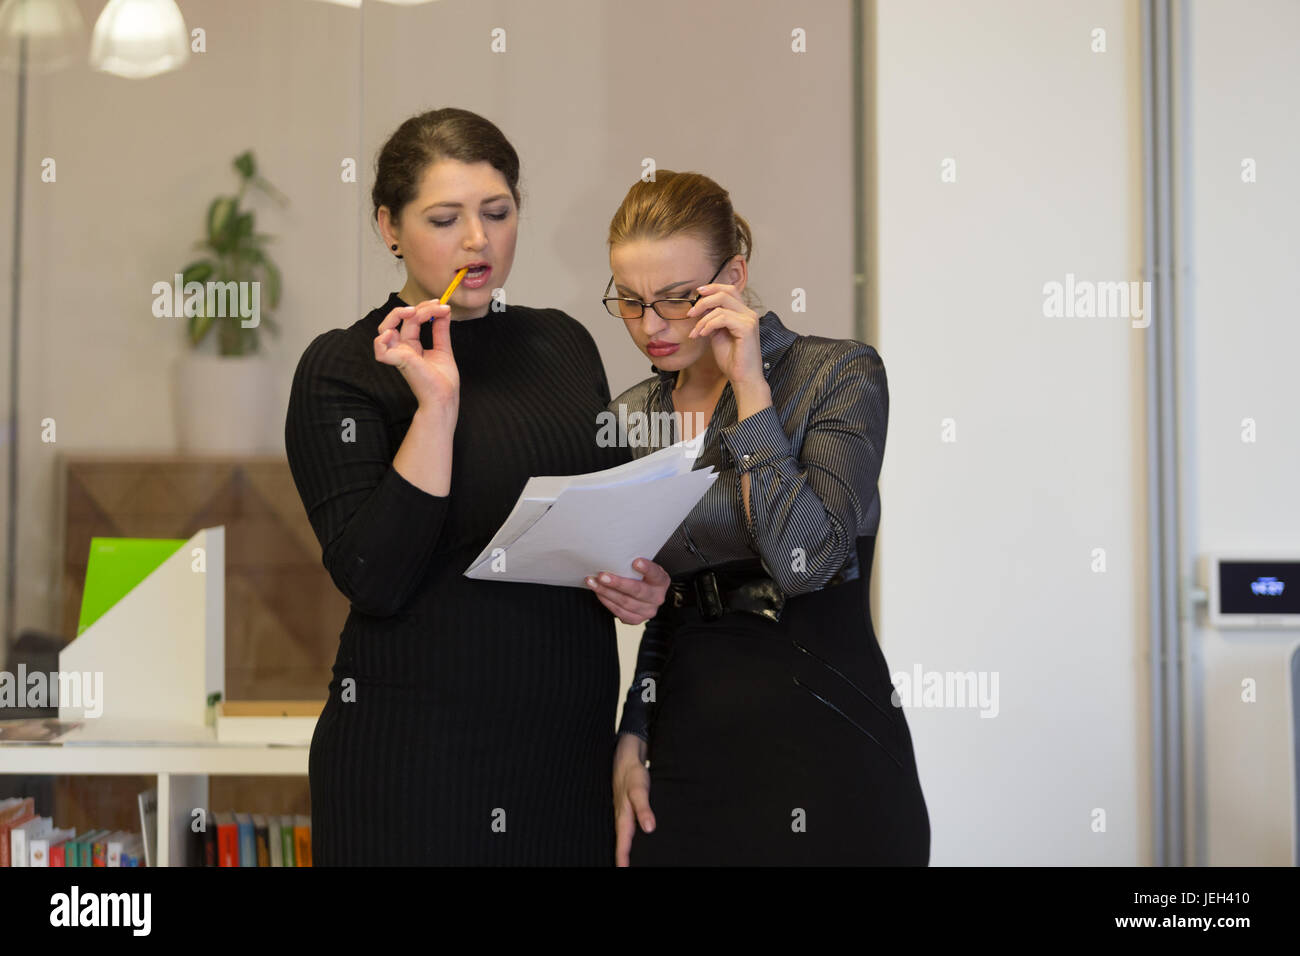 Two business women at work in different regular office situations. - Stock Image